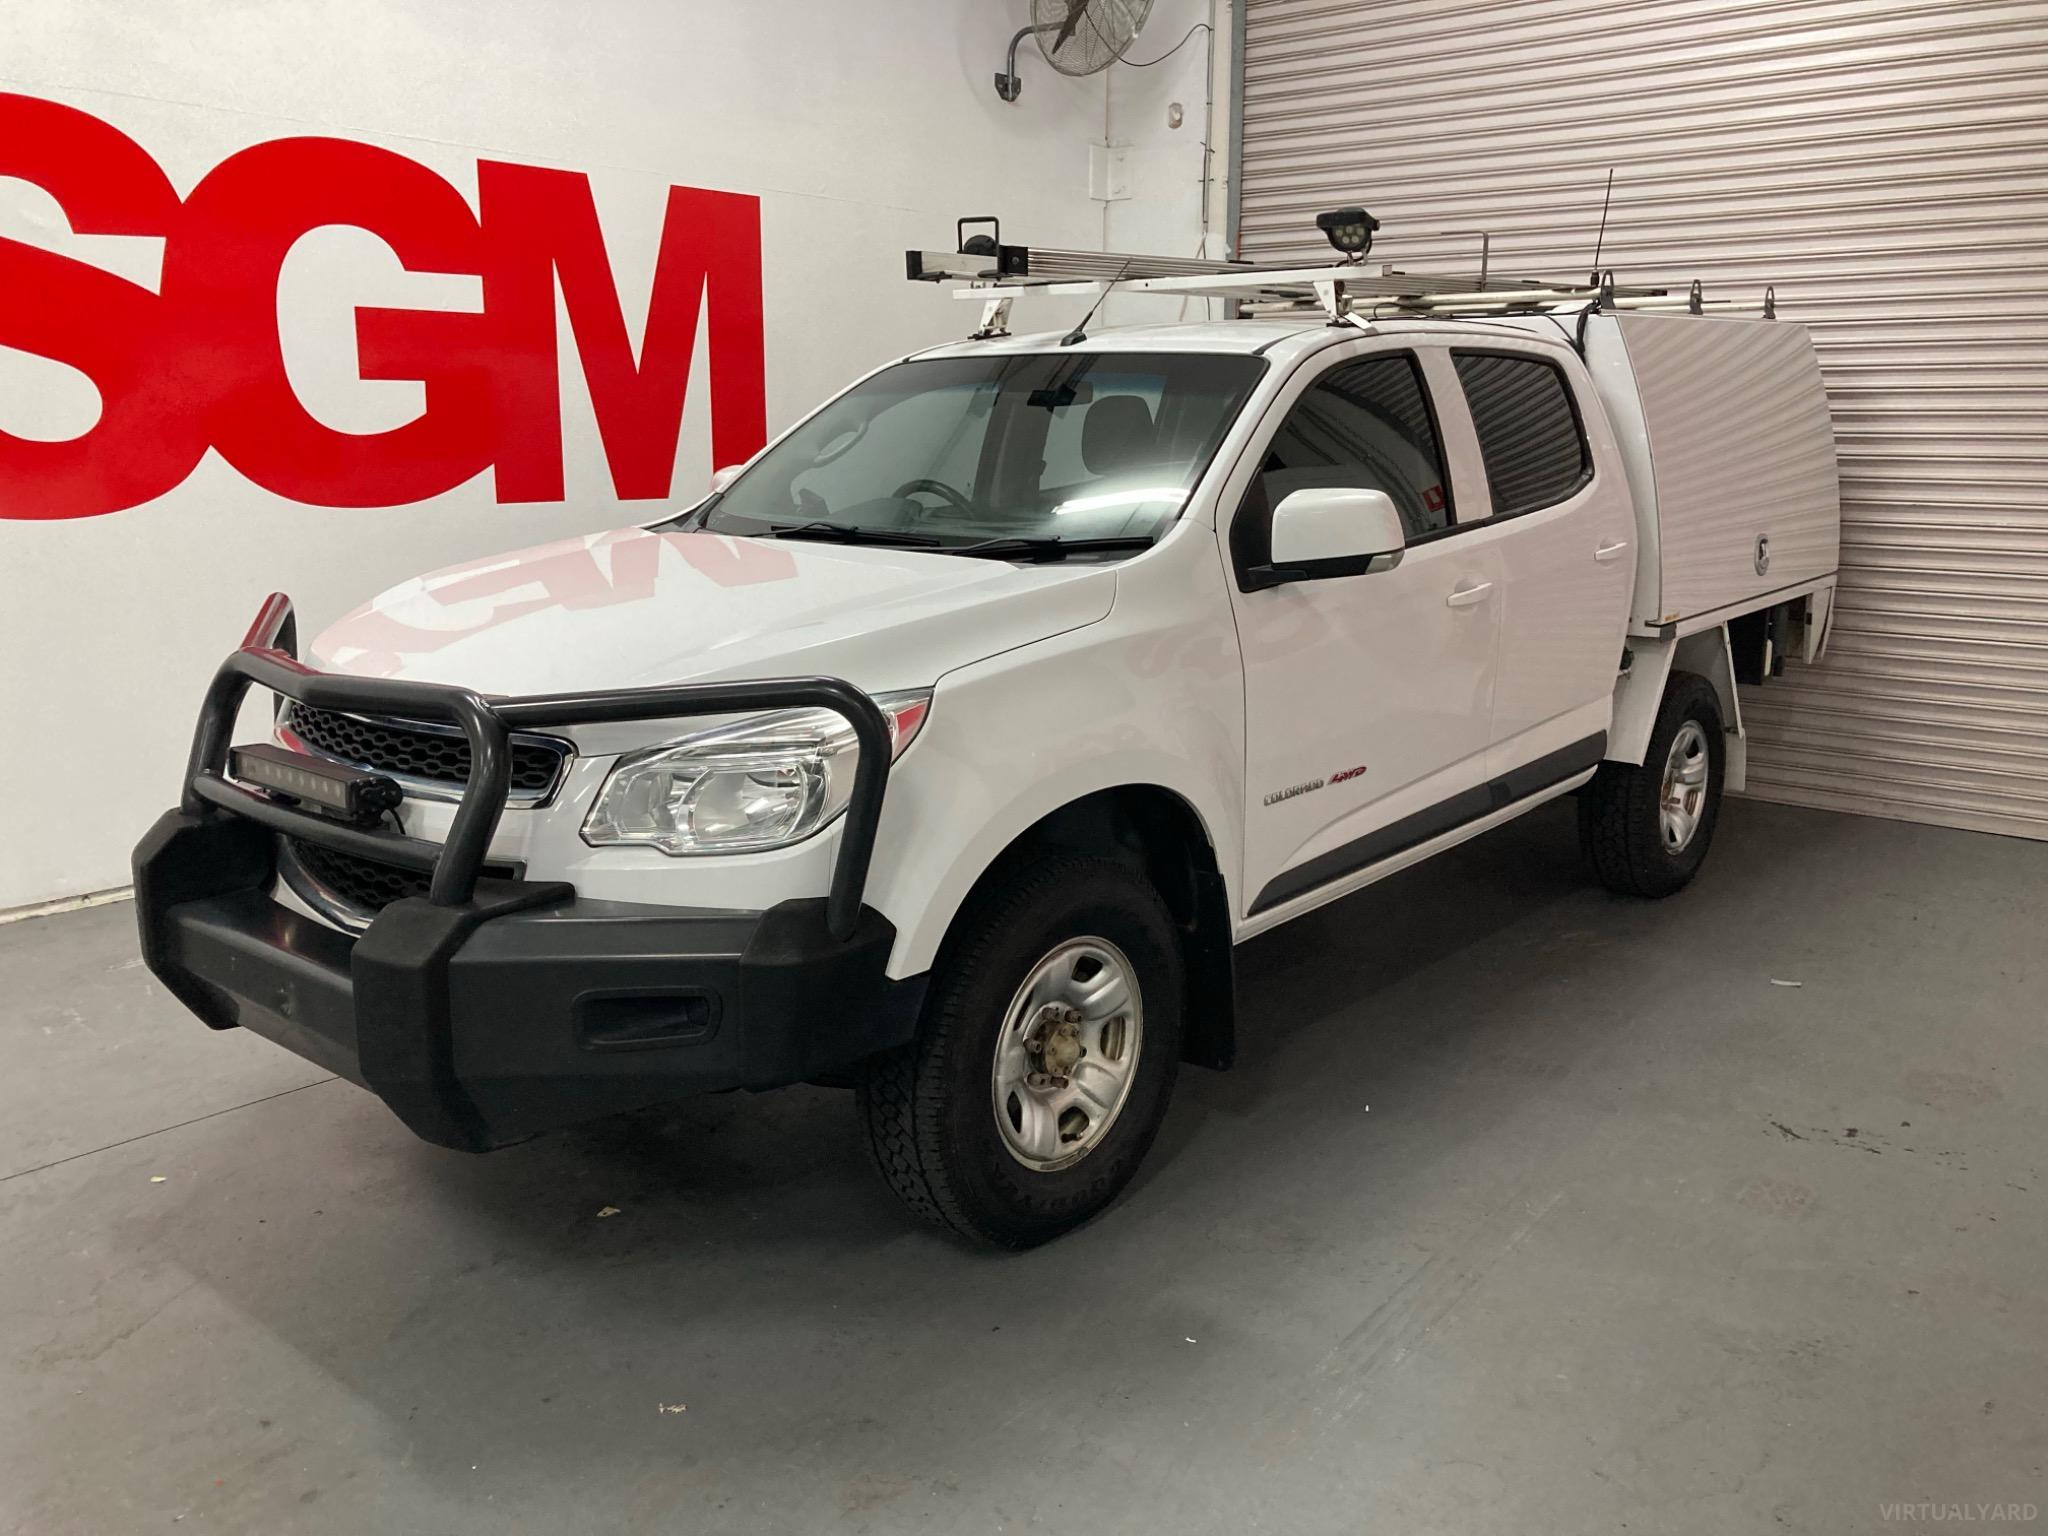 2016 Holden Colorado RG LS Cab Chassis Crew Cab 4dr Spts Auto 6sp 4x4 2.8DT MY16 Picture 8